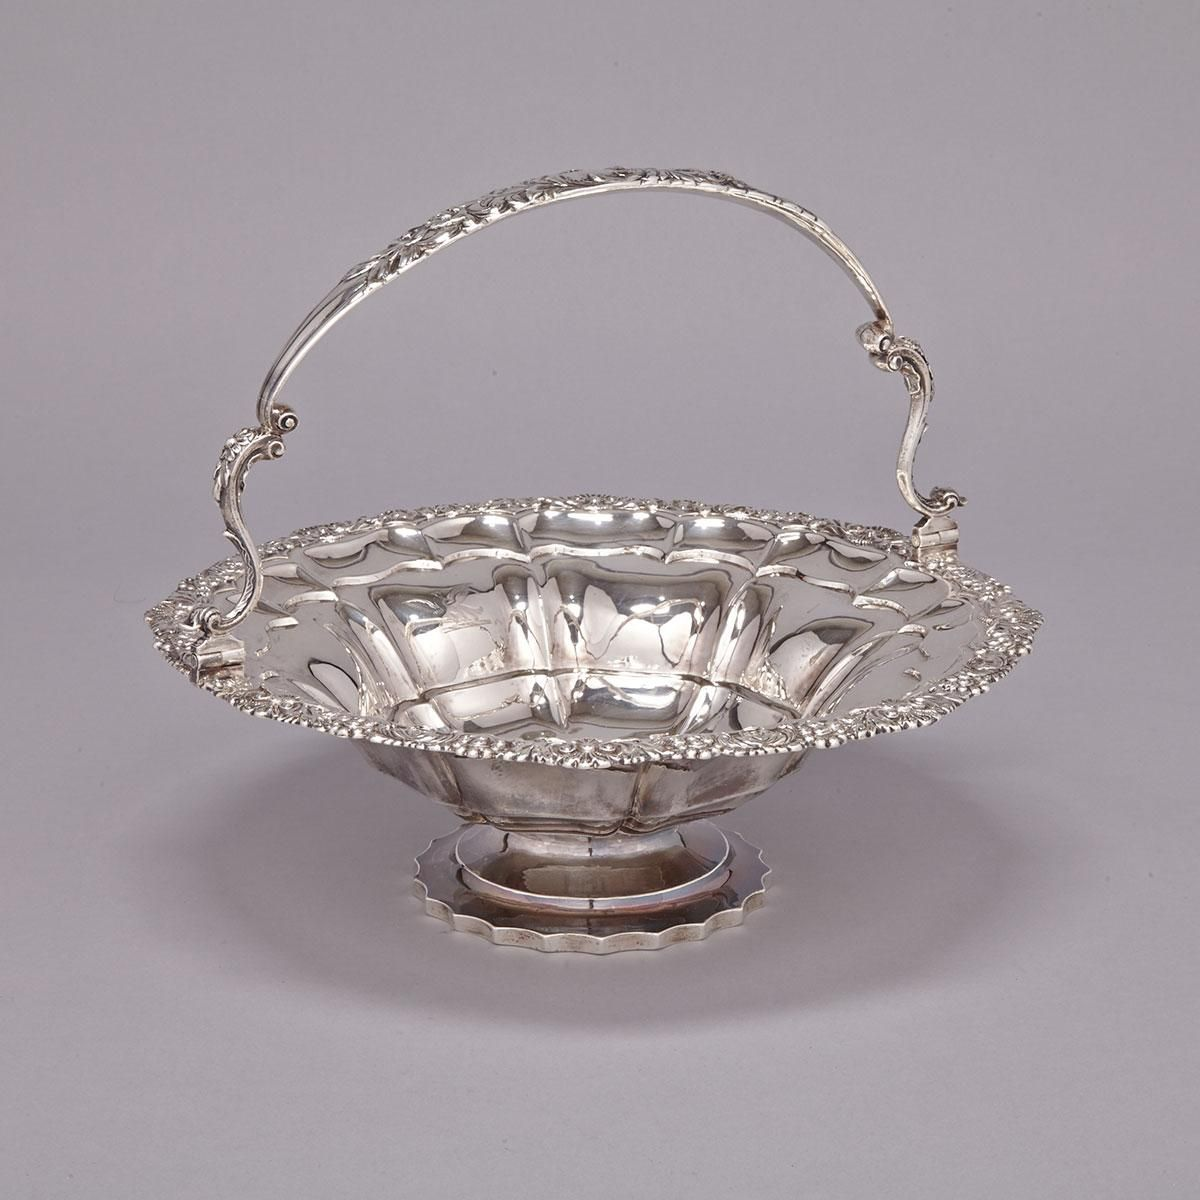 William IV Silver Circular Cake Basket, Charles Thomas Fox, London, 1830 with moulded rim and swing handle, engraved with a crest and armorials, height 11.4""